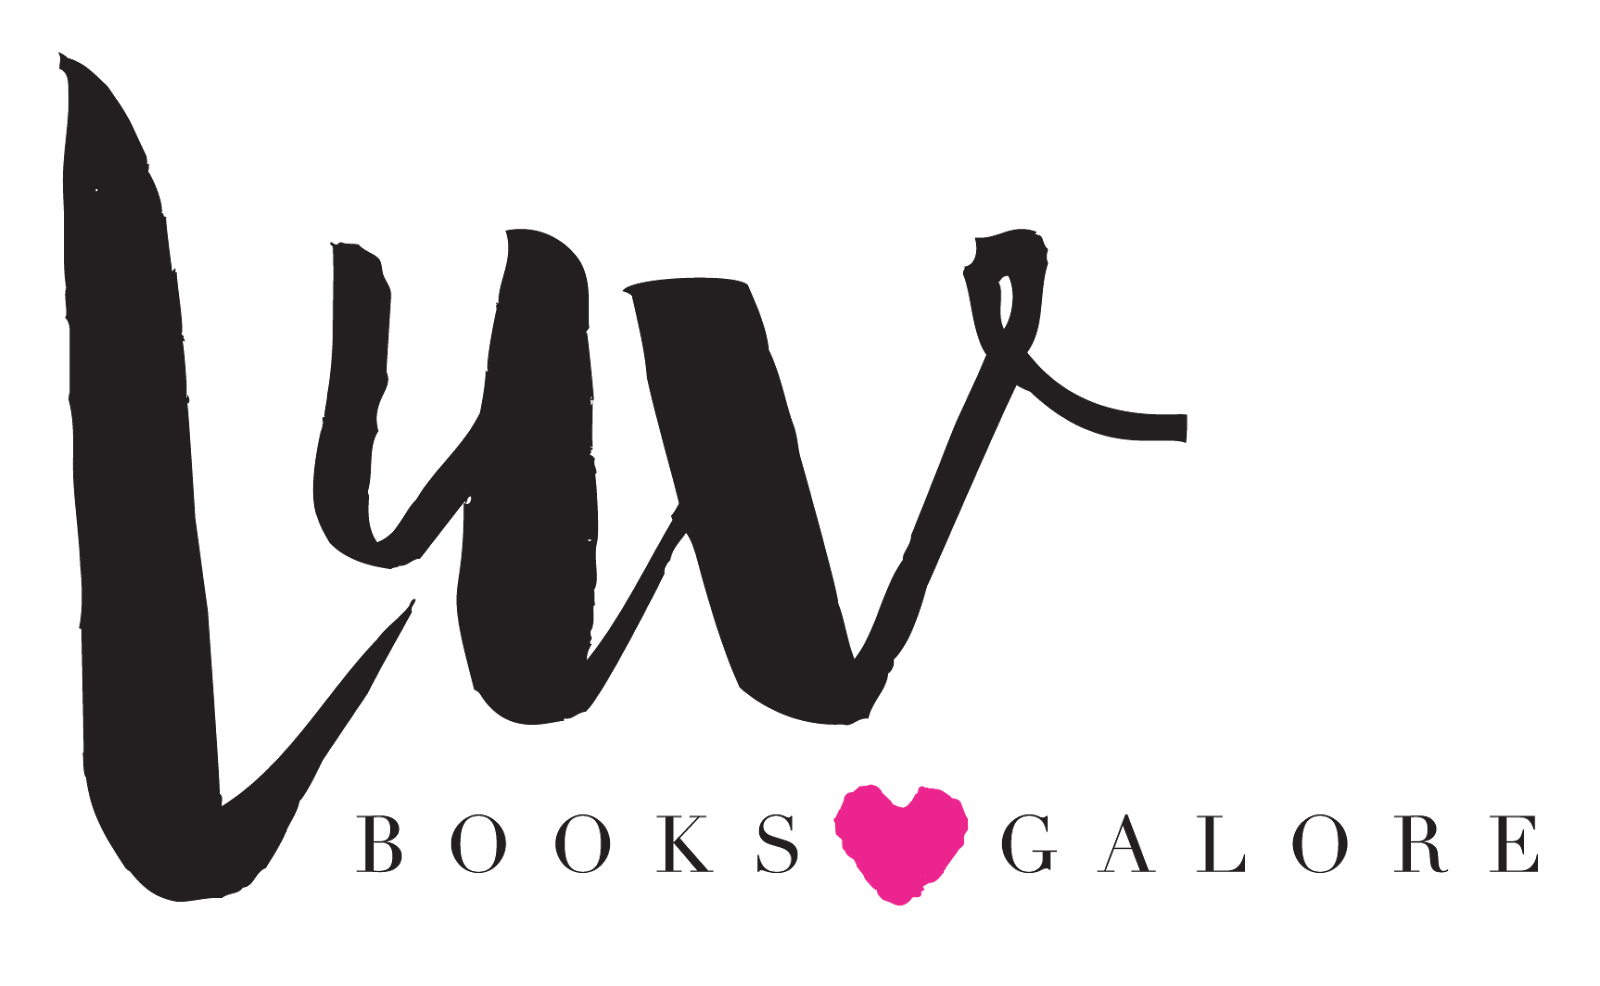 Luv Books Galore Blog!